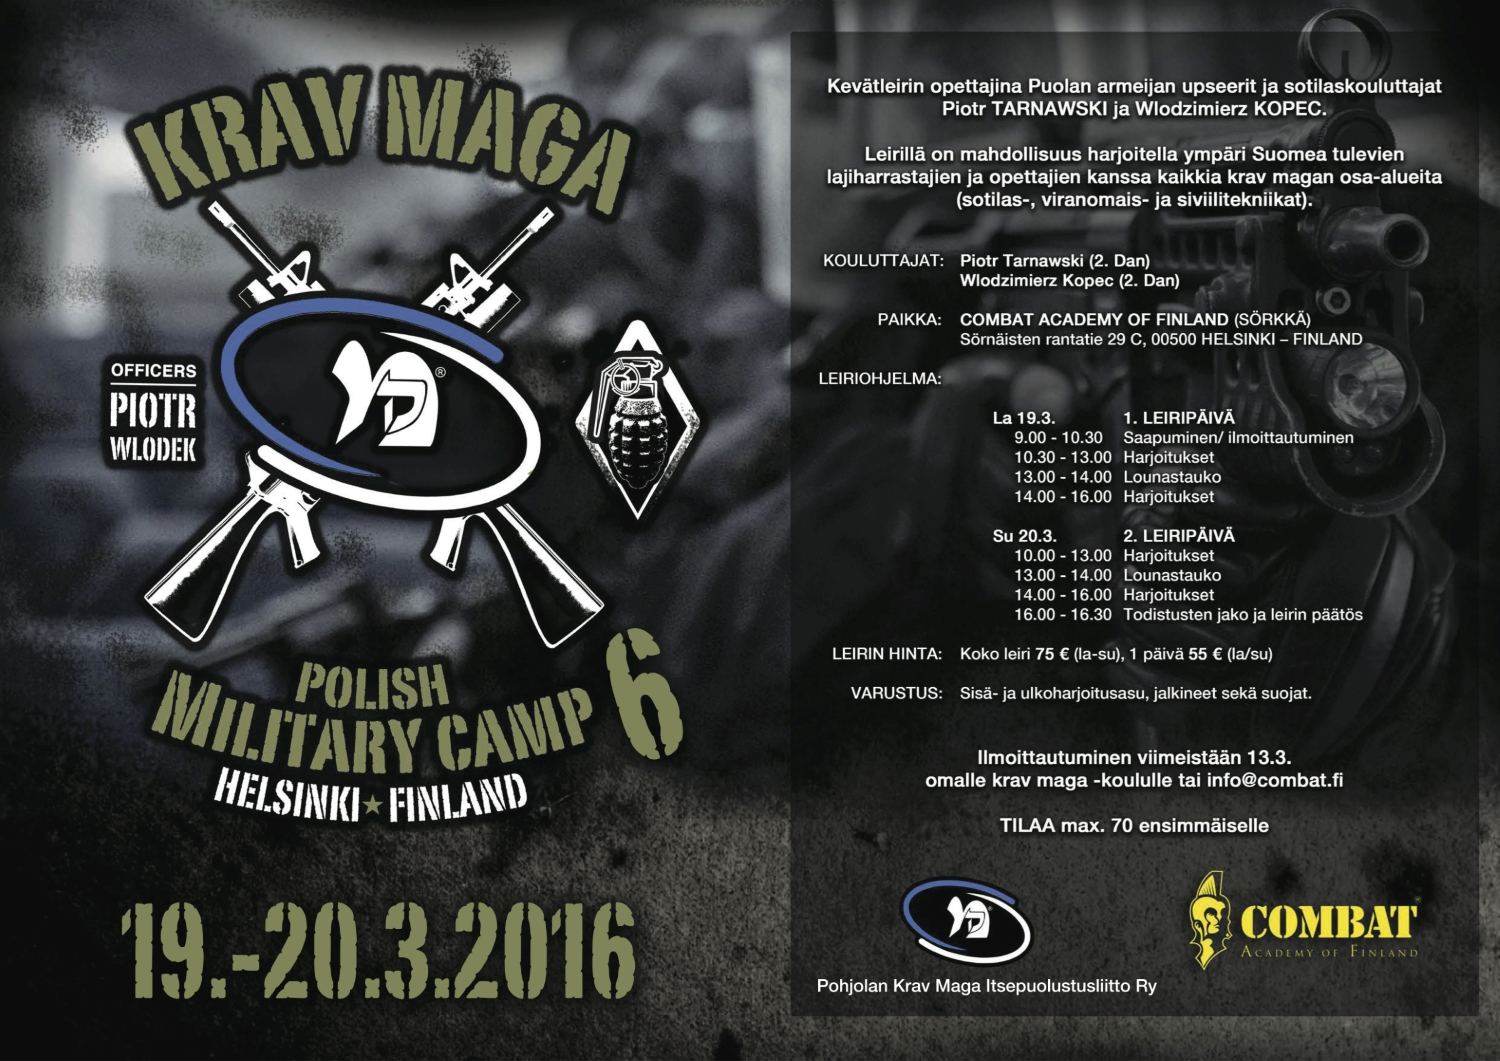 POLISH MILITARY CAMP 2016 nettiin